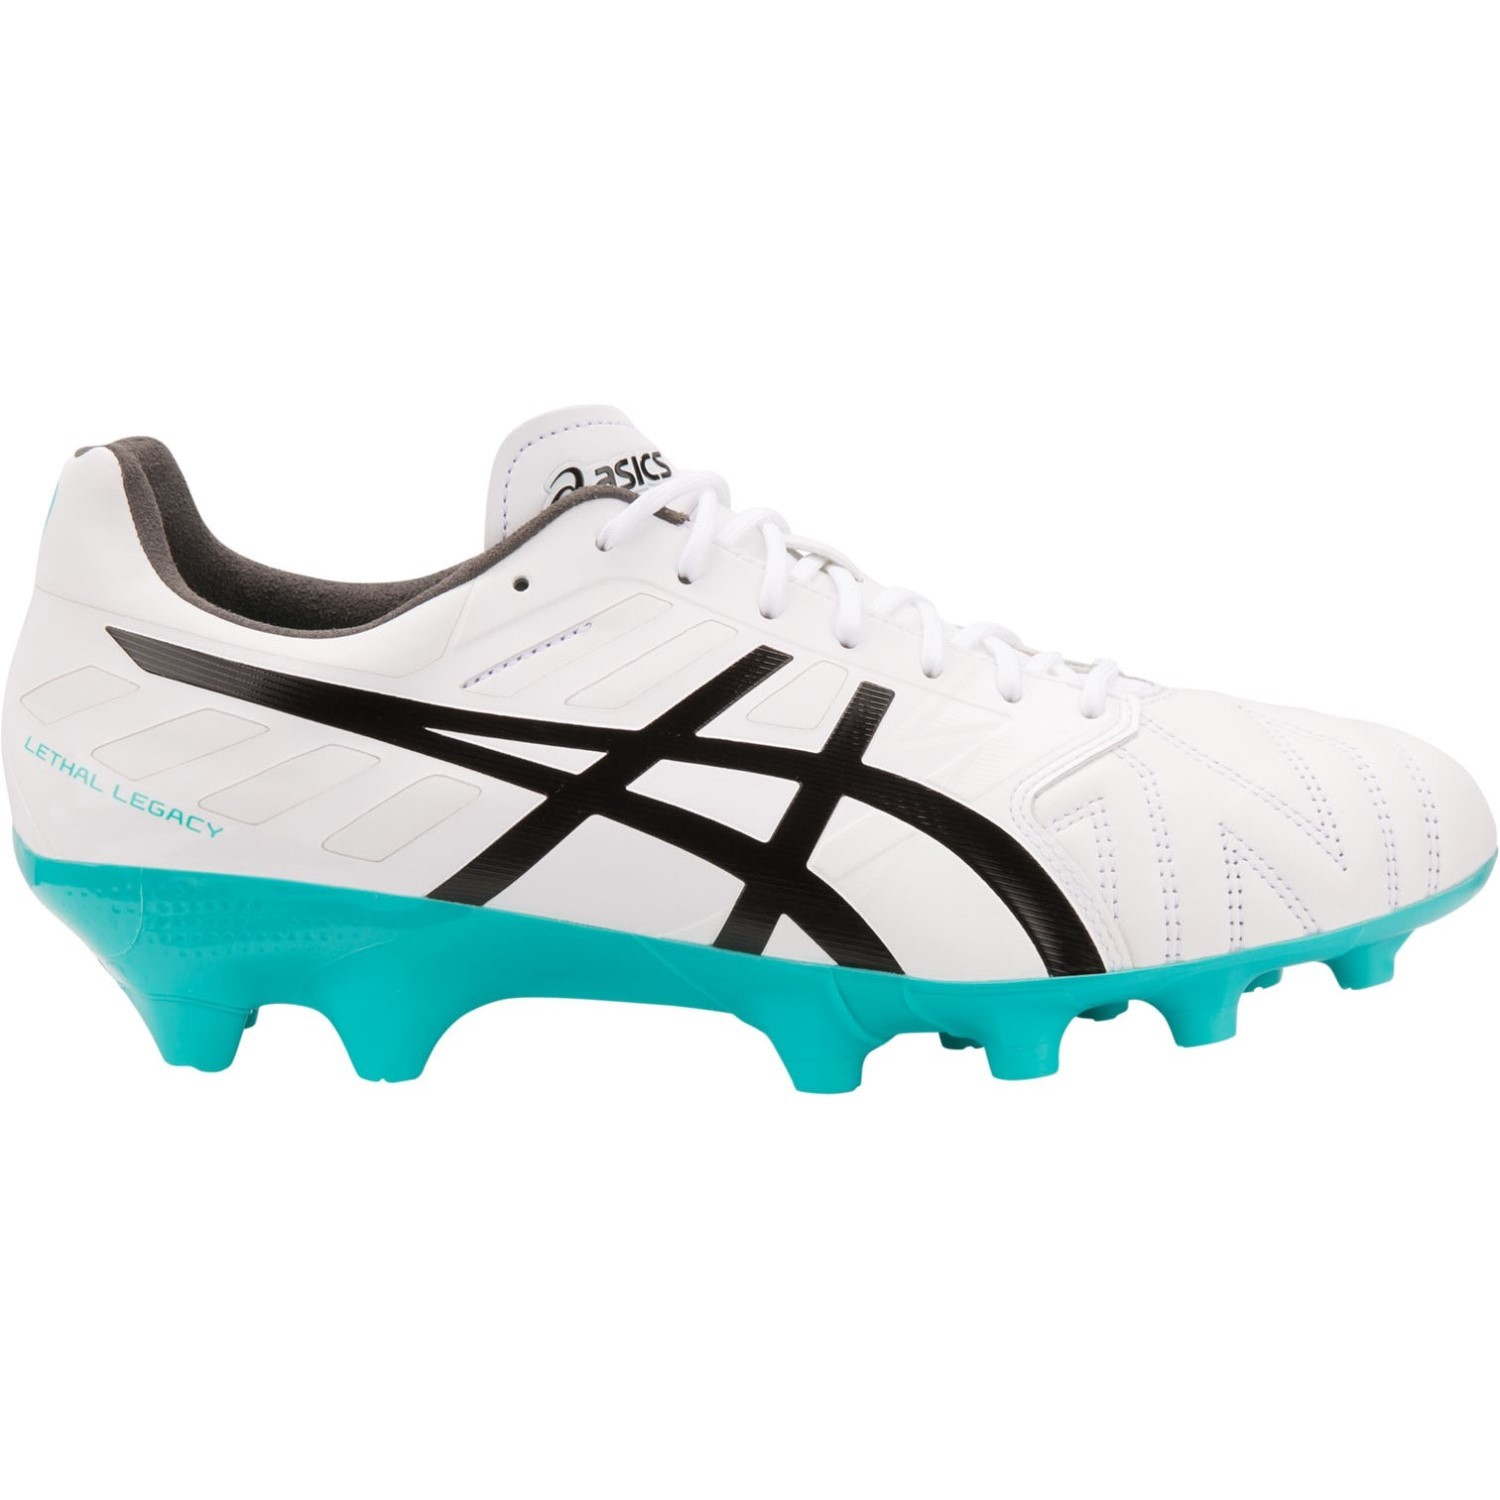 super service look for top-rated cheap Asics Lethal Legacy IT - Mens Football Boots